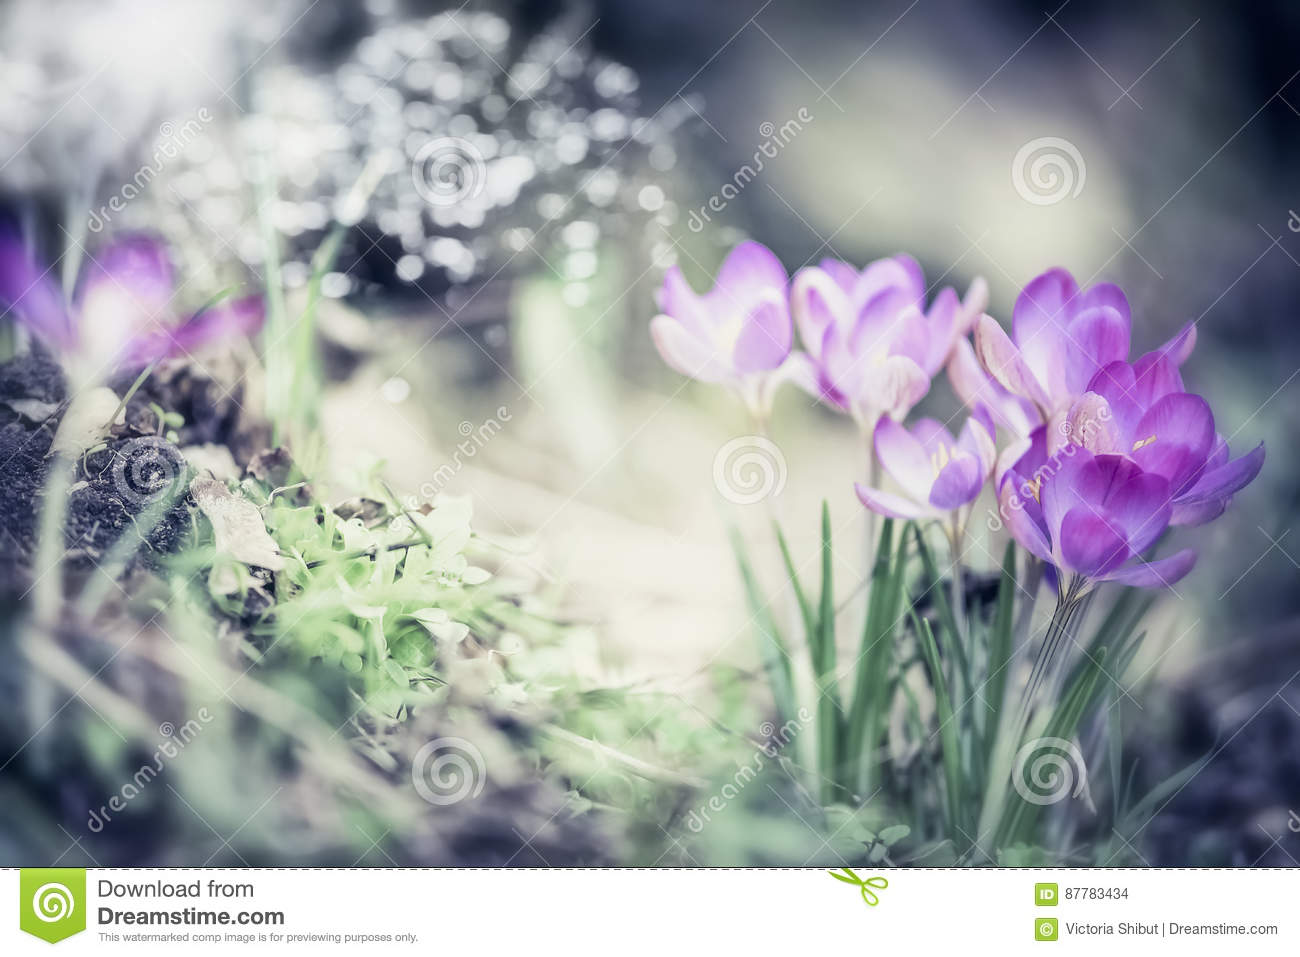 Spring nature background with pretty crocuses flowers in garden or park